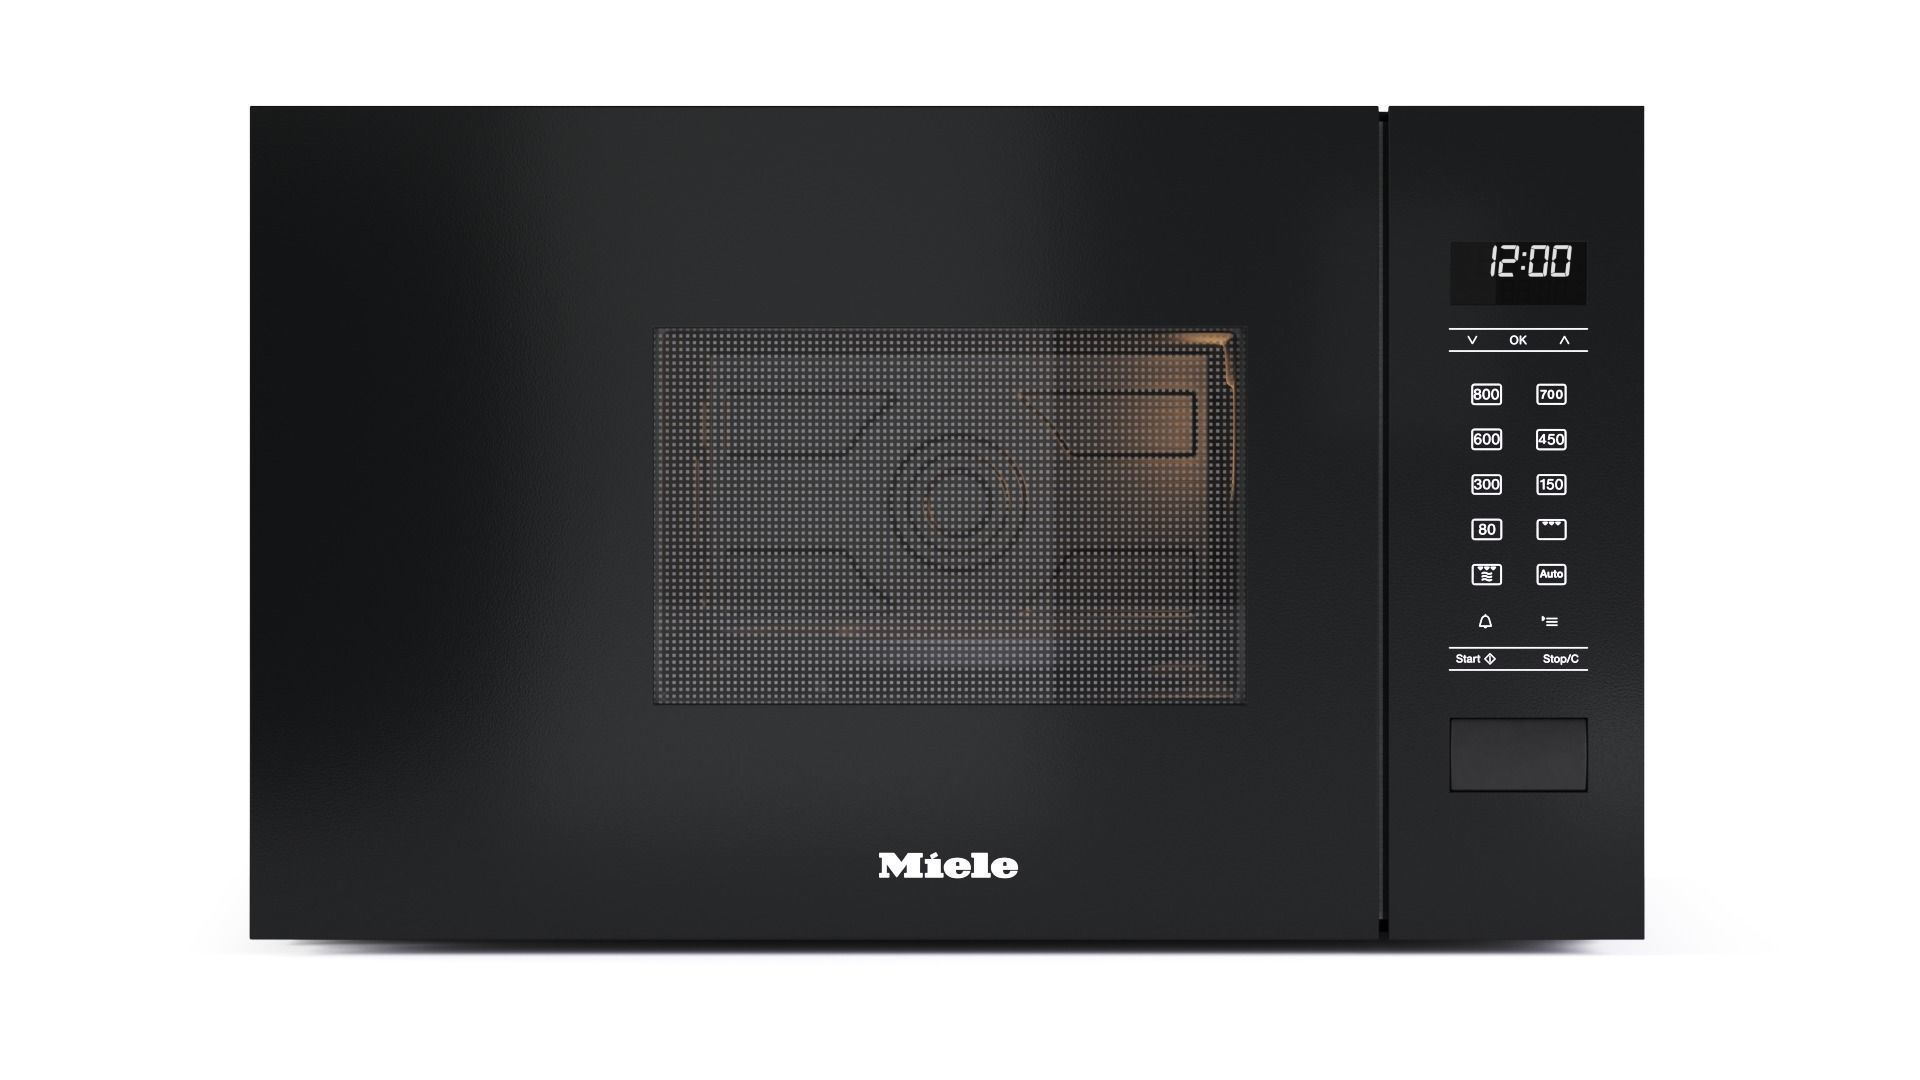 Built-in microwave oven - M 2234 SC - by Miele